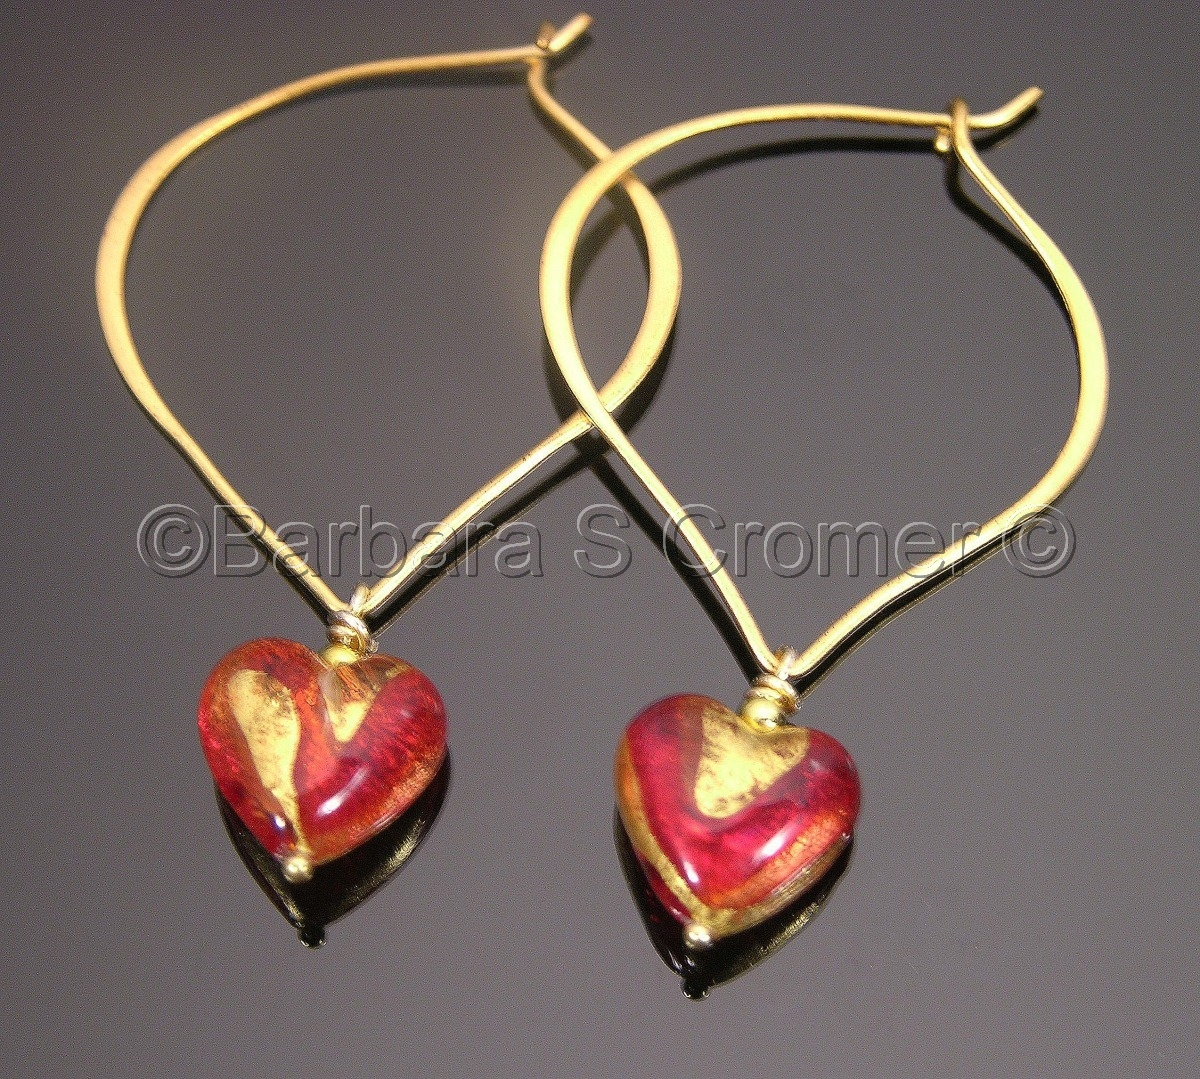 heart earrings of Red Venetian lamp work, embedded 24 Kt. gold,  splashes of  24 Kt gold with gold filled trim,  large handmade Vermeil lotus ear wire (large view)